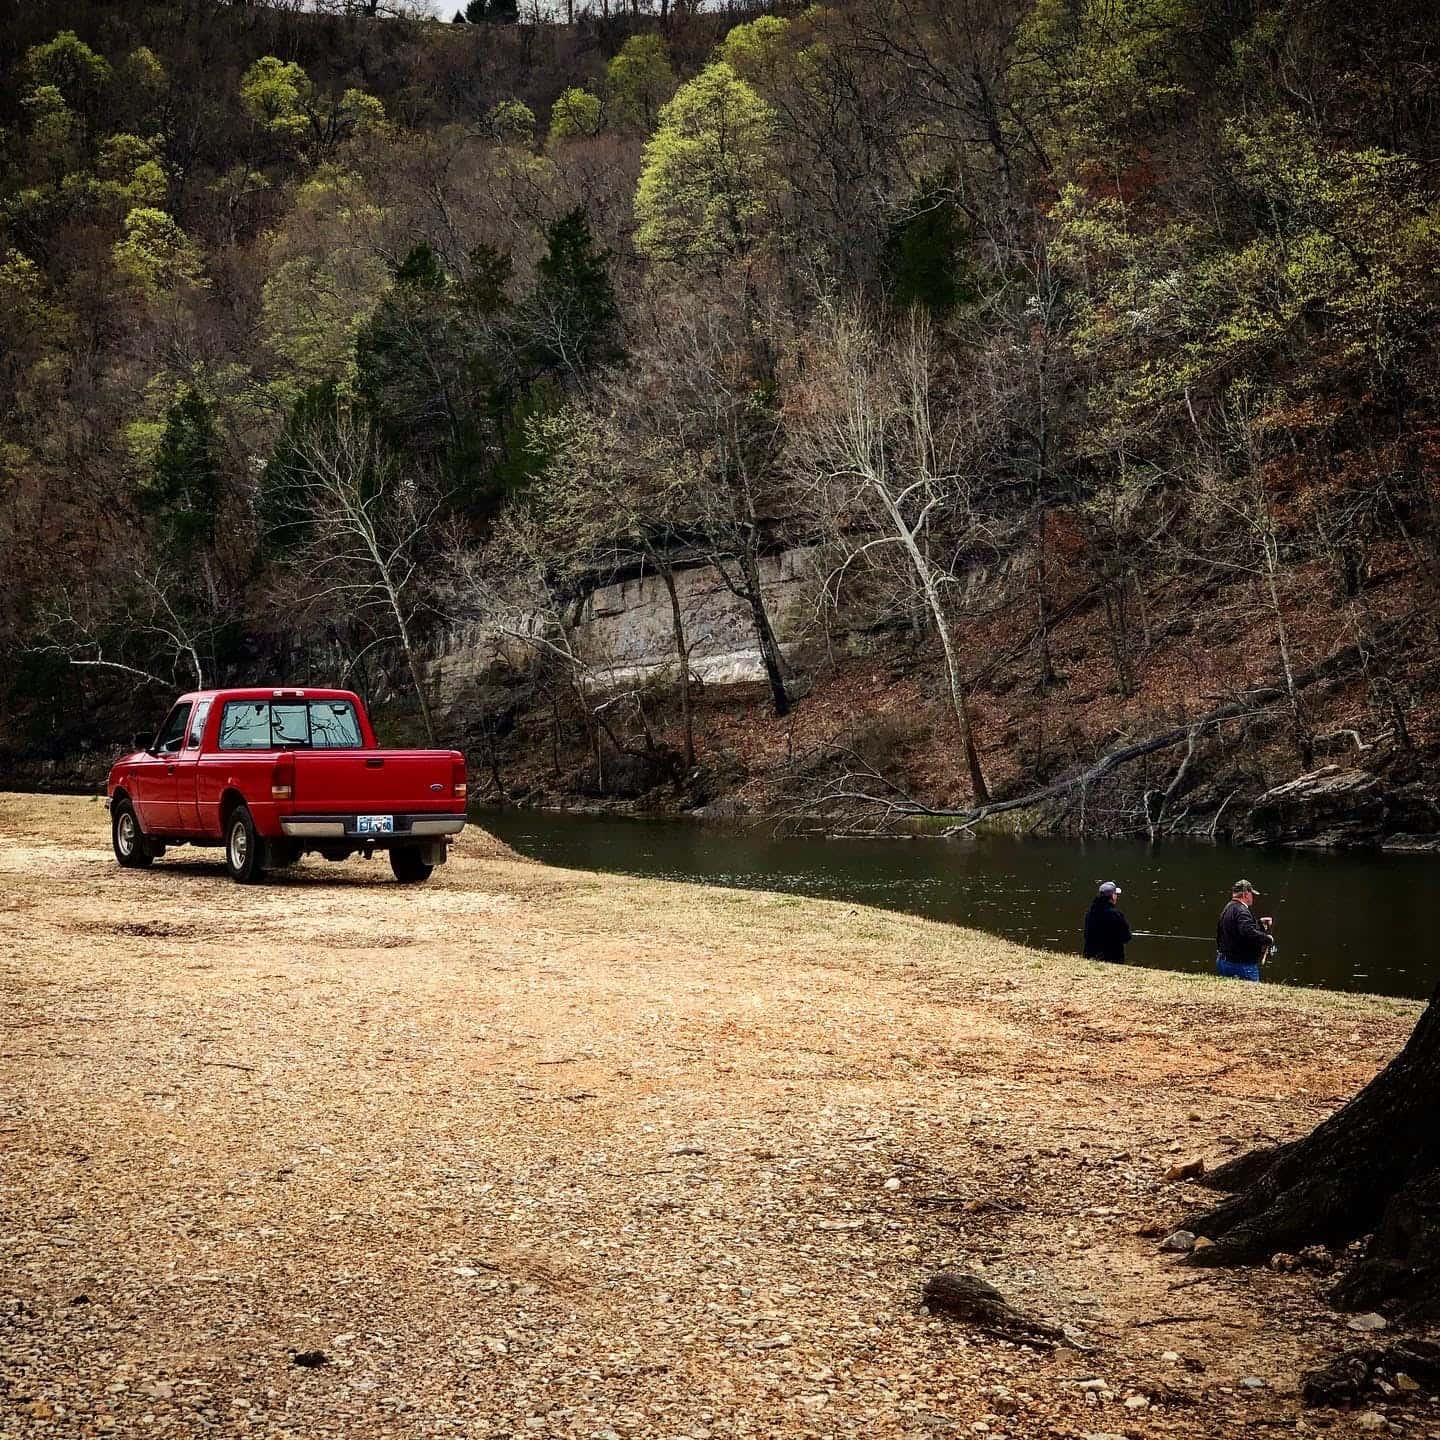 Red truck parked beside a river where two people are fishing.